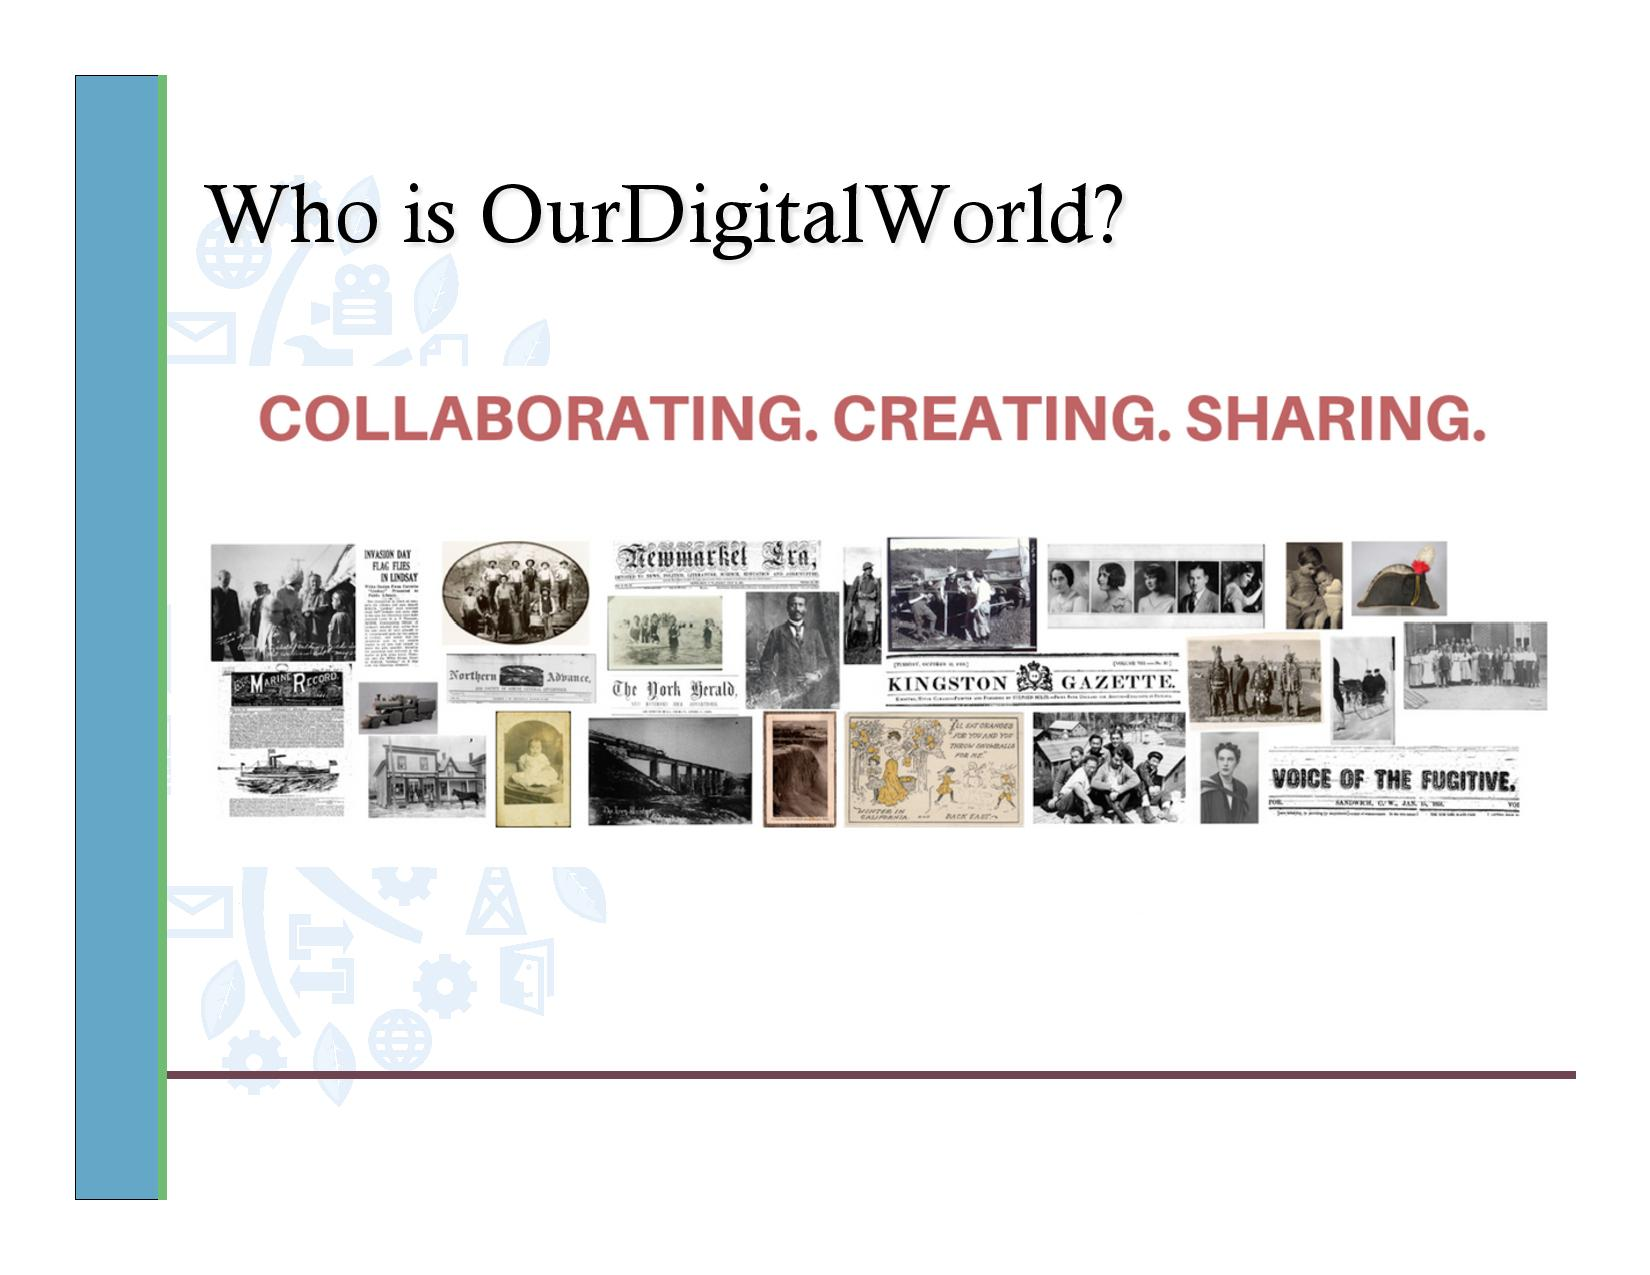 Who is our digital world